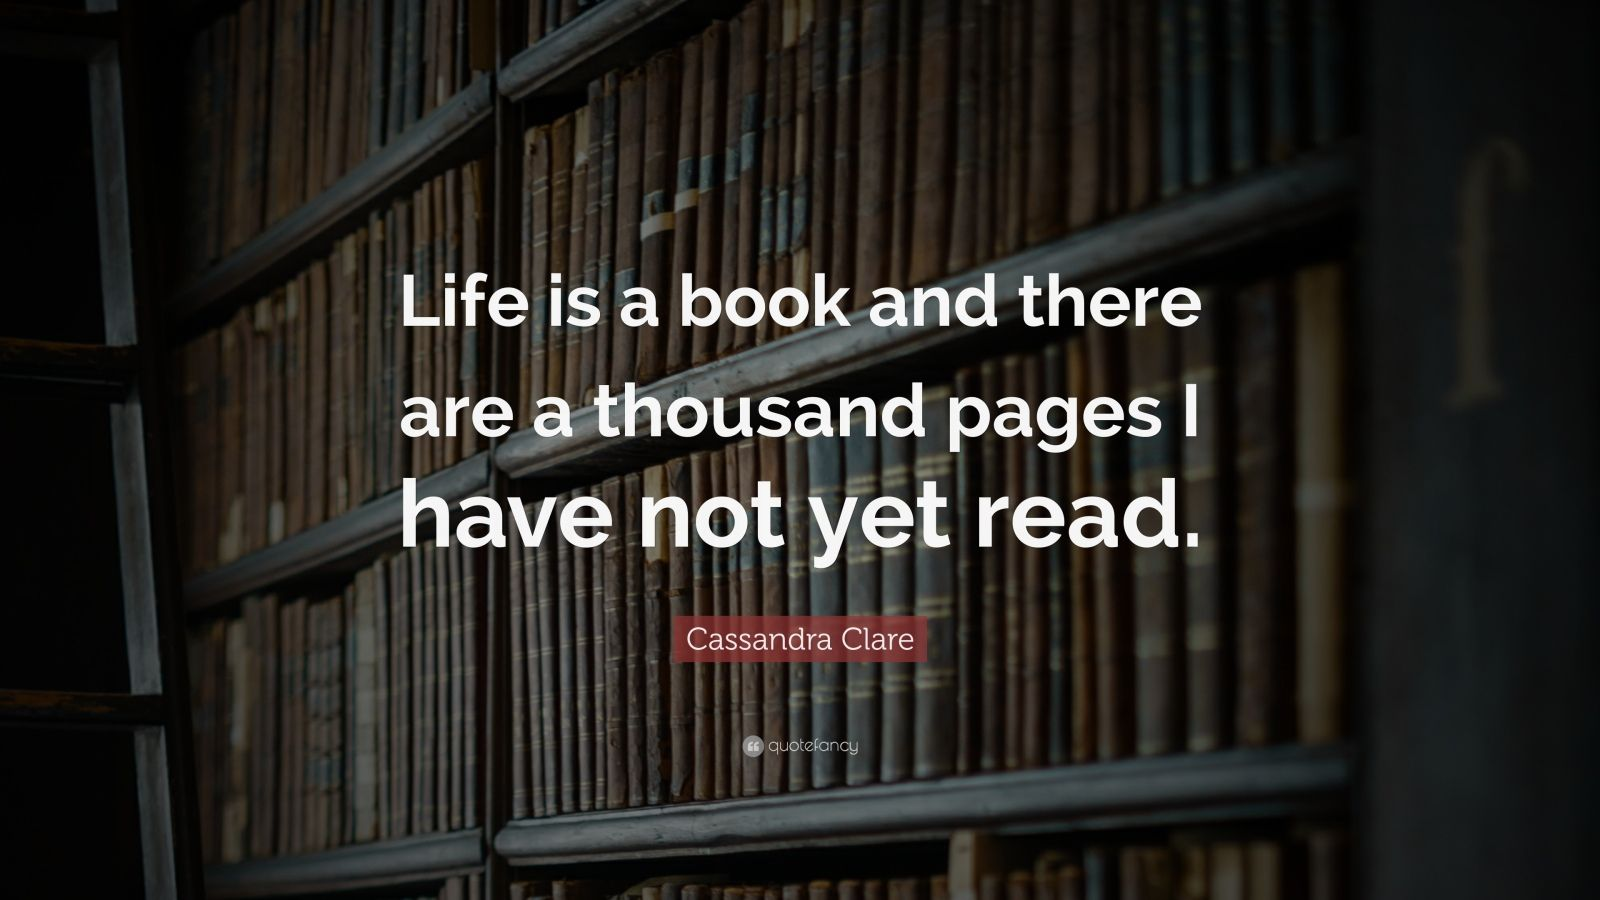 Book Quotes About Life Life Quotes 100 Wallpapers  Quotefancy